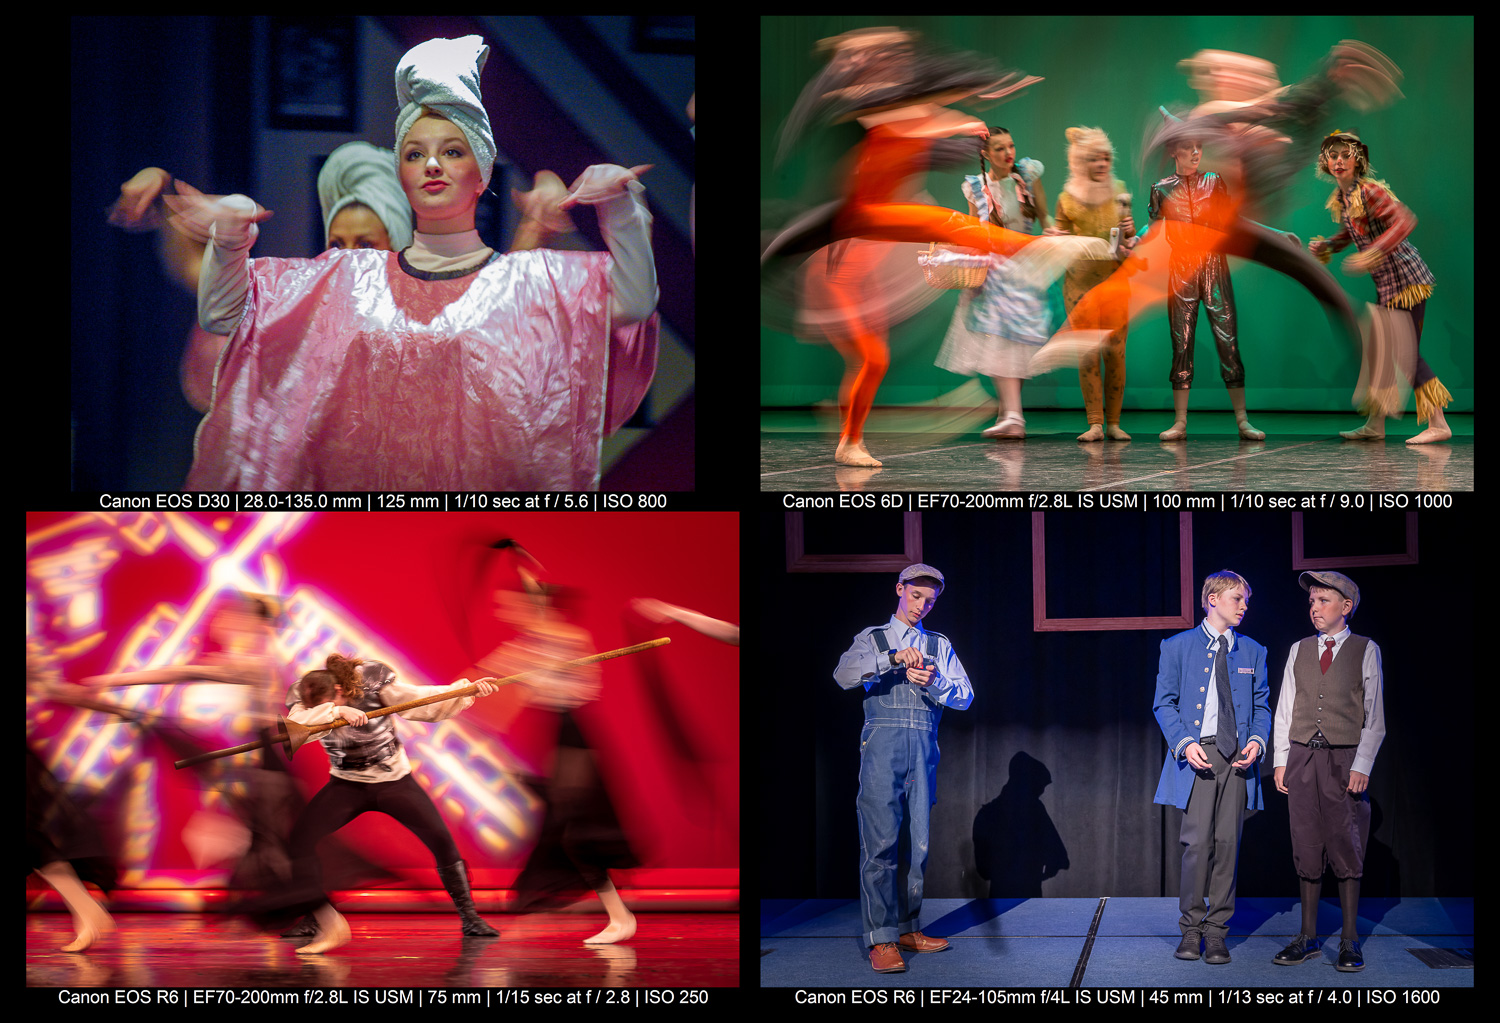 creative stage photography images with motion blur